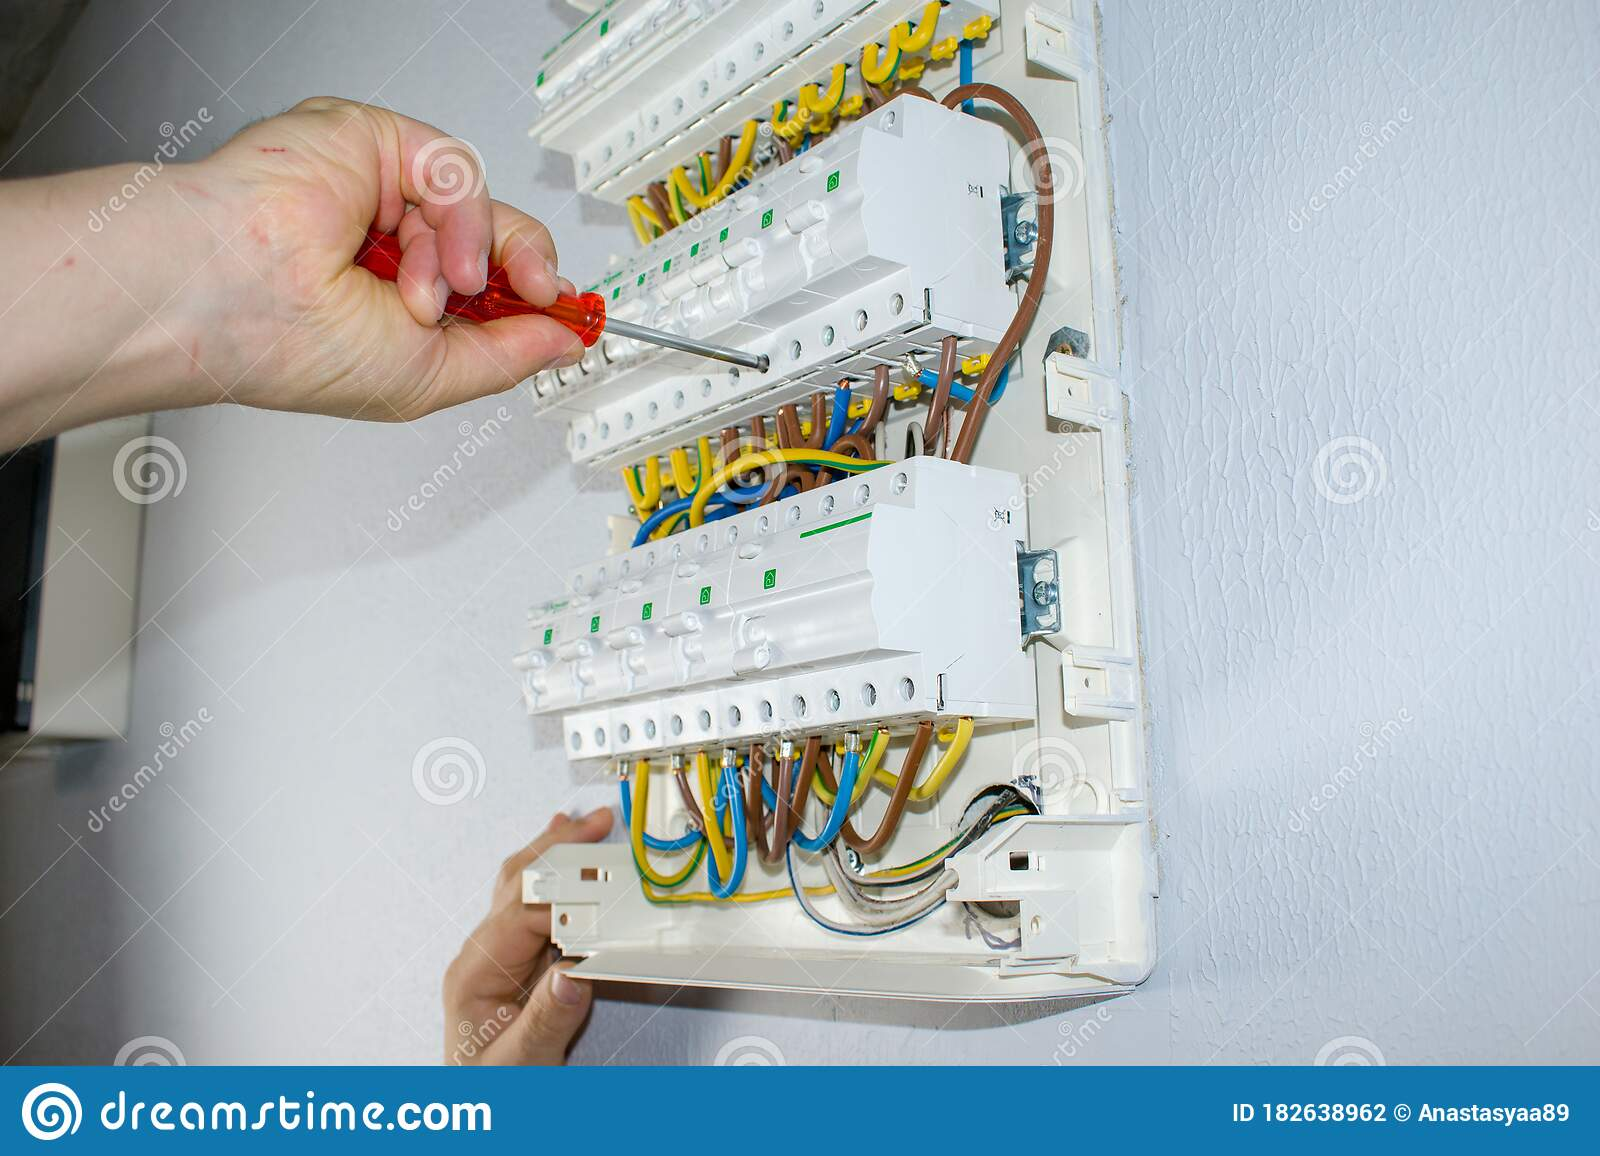 Man S Hand Fixes Wires In Electric Board Installation And Connection Of Electrical Equipment Professional With Tools In Hand Stock Photo Image Of Electricity Inspecting 182638962